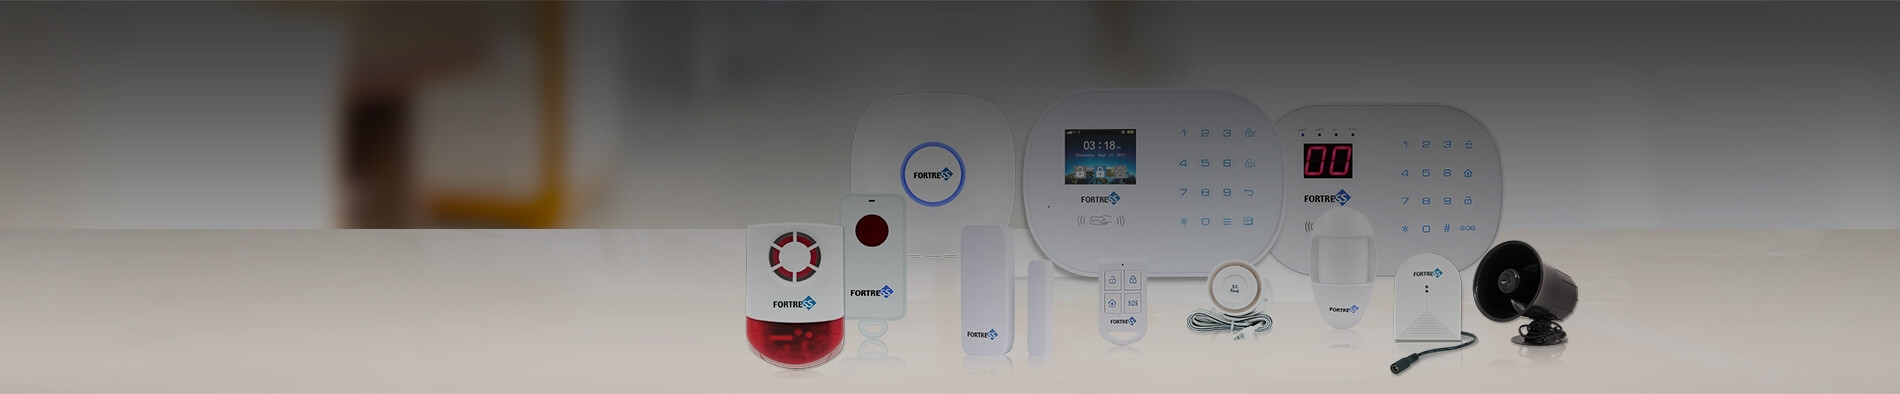 S03 WiFi Security System